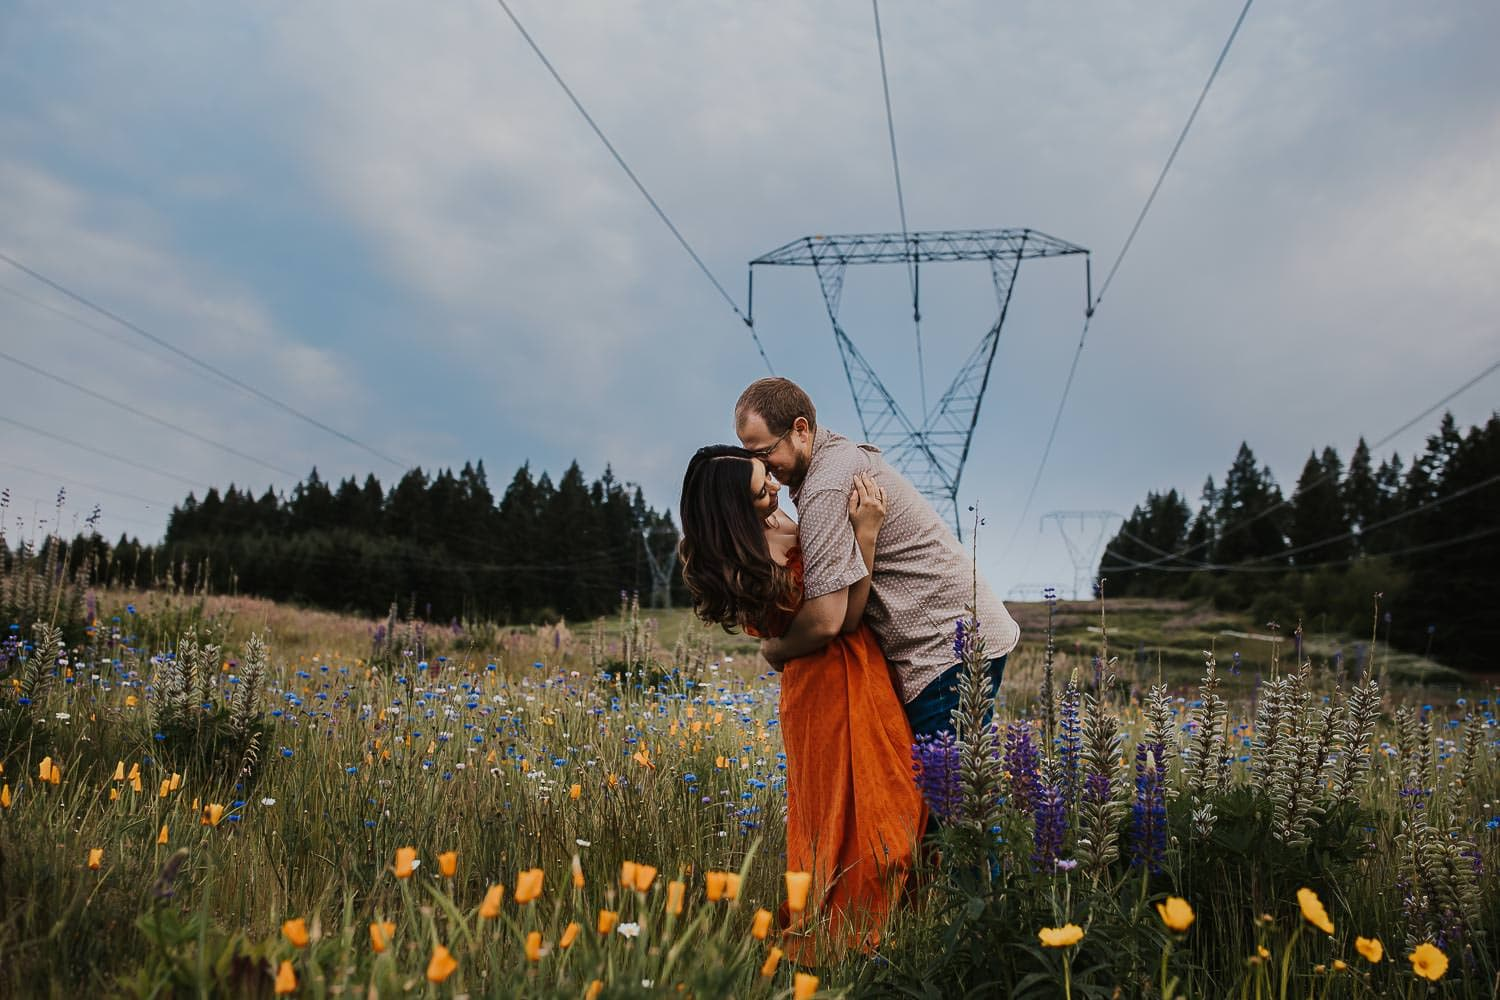 Couple dancing in a flower field with power lines behind them